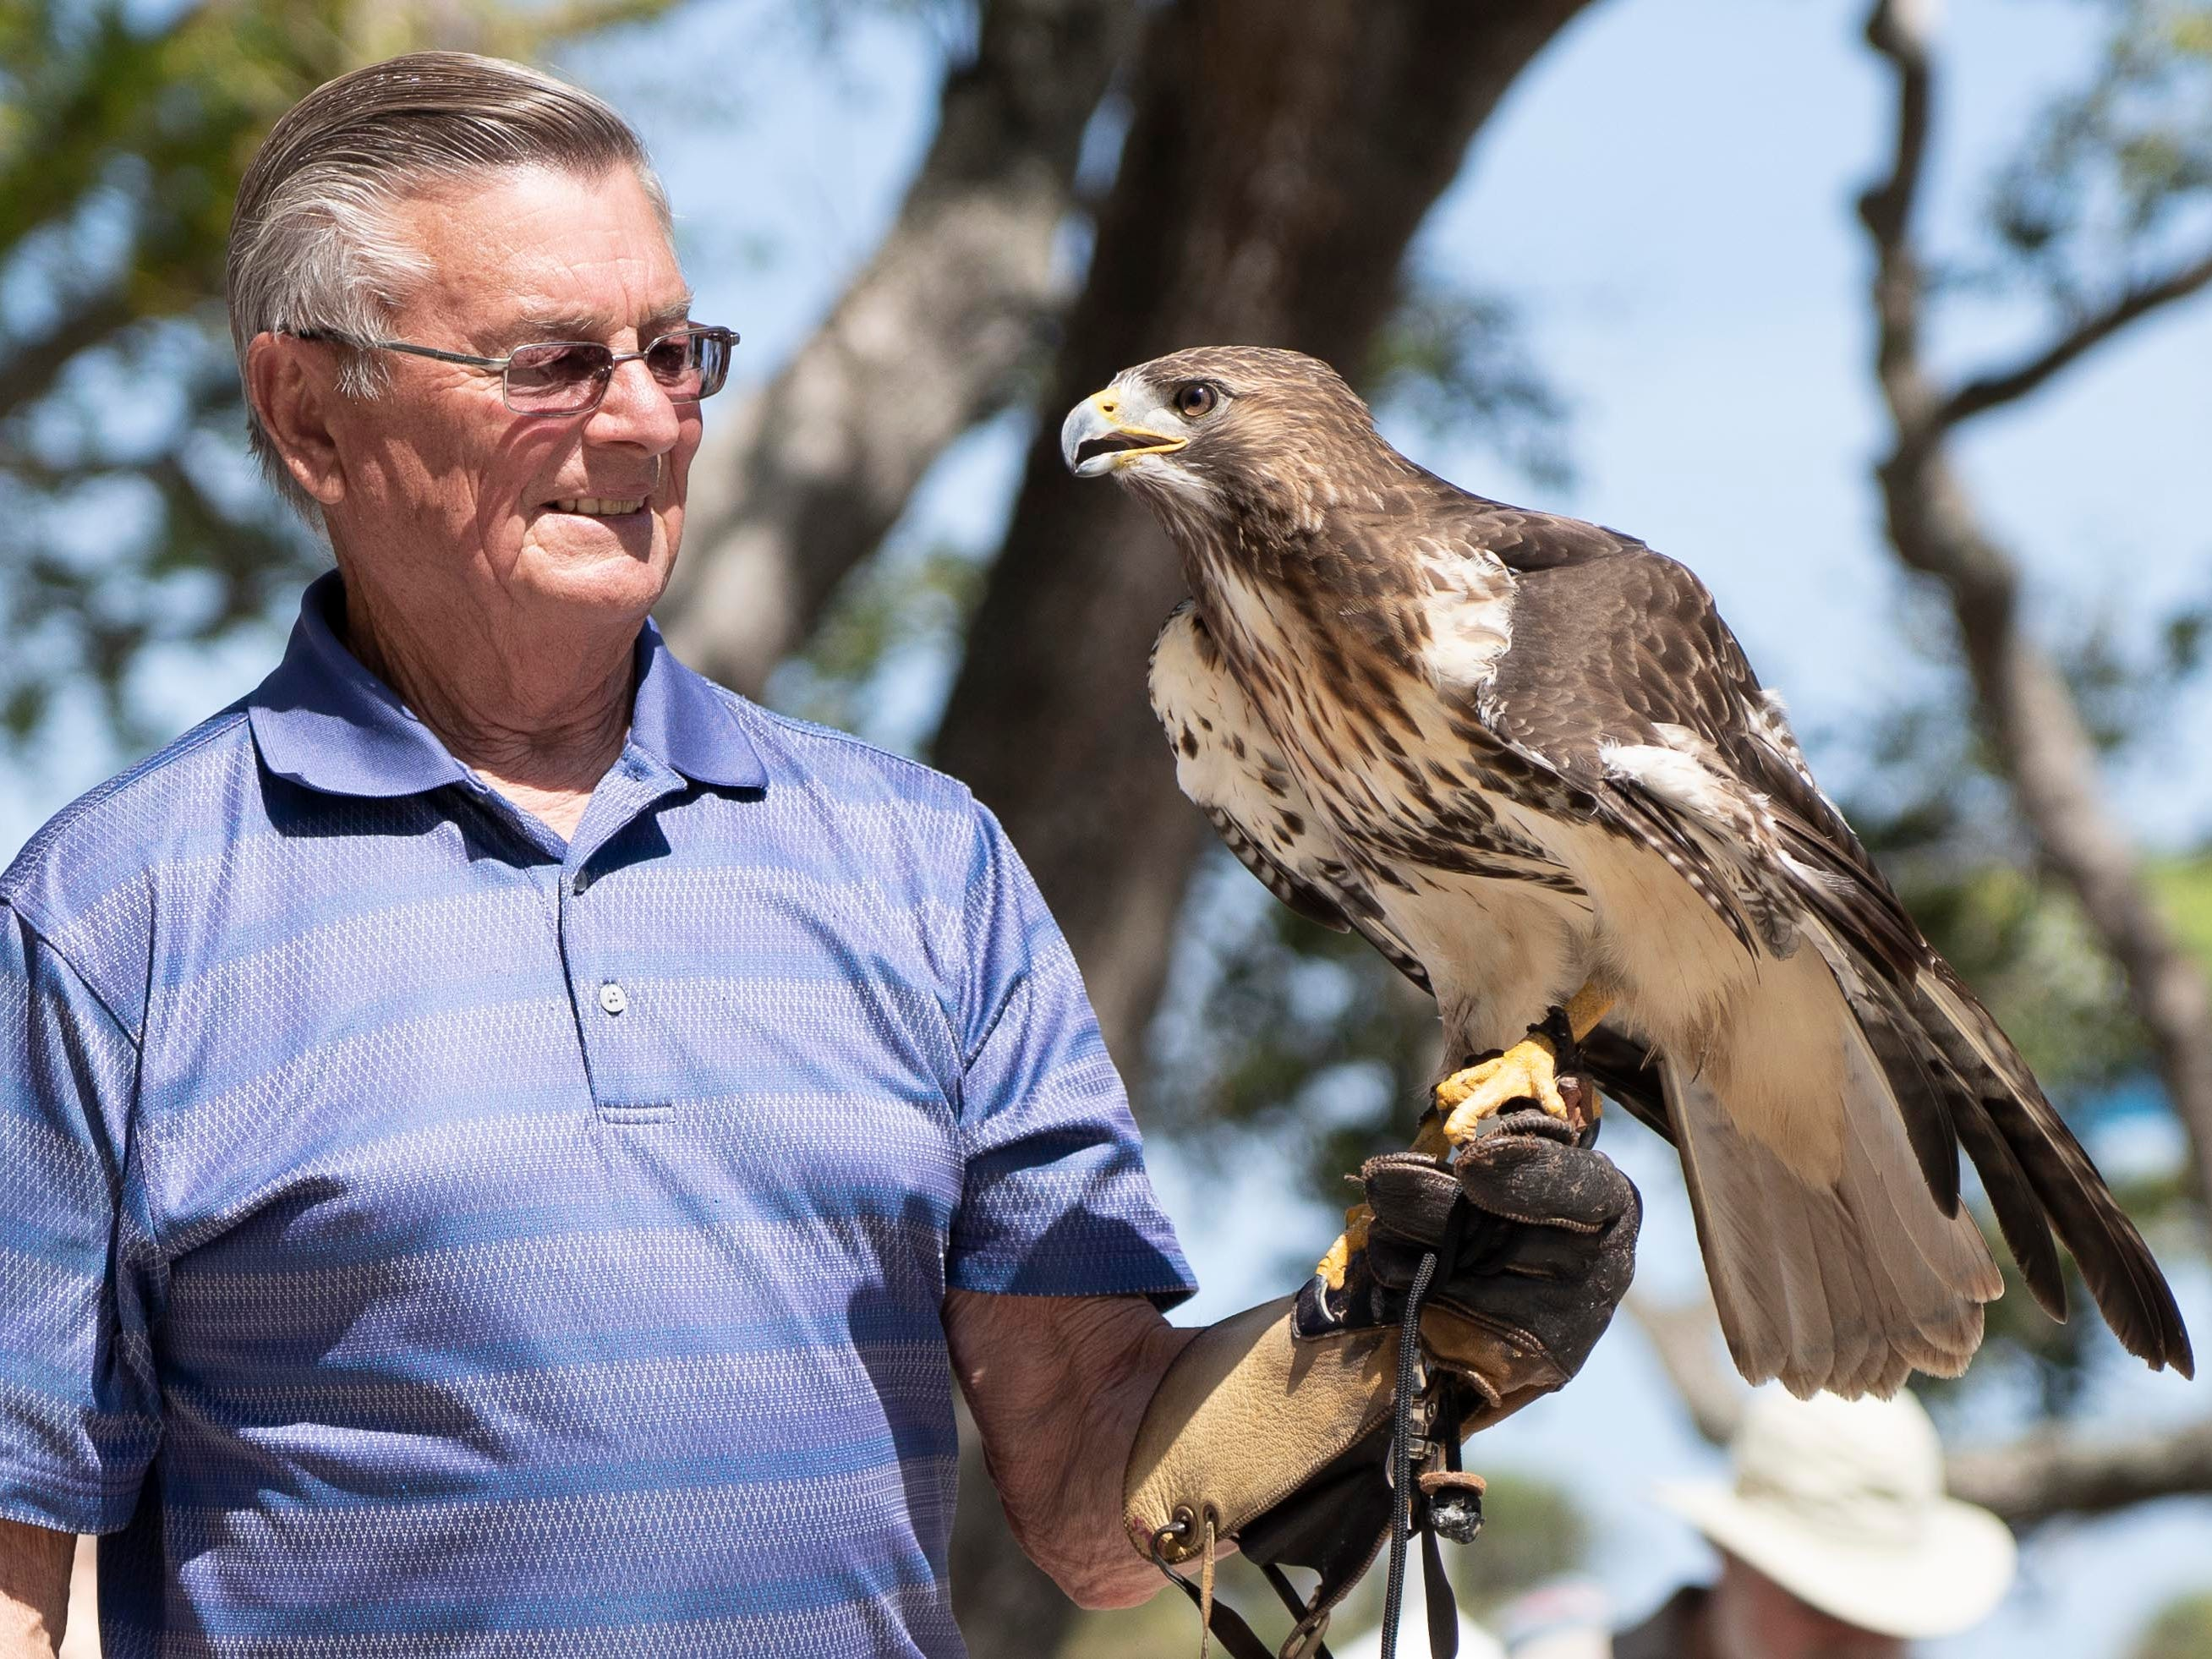 The 27th annual Pelican Island Wildlife Festival was held on Saturday, March 9, 2019, at Riverview Park in Sebastian. The festival celebrates the anniversary of the establishment of Pelican Island as the nationÕs first national wildlife refuge on March 14, 1903, by President Theodore Roosevelt. The event had wildlife demonstrations, arts and crafts, food, music, face painting and a variety of vendors.